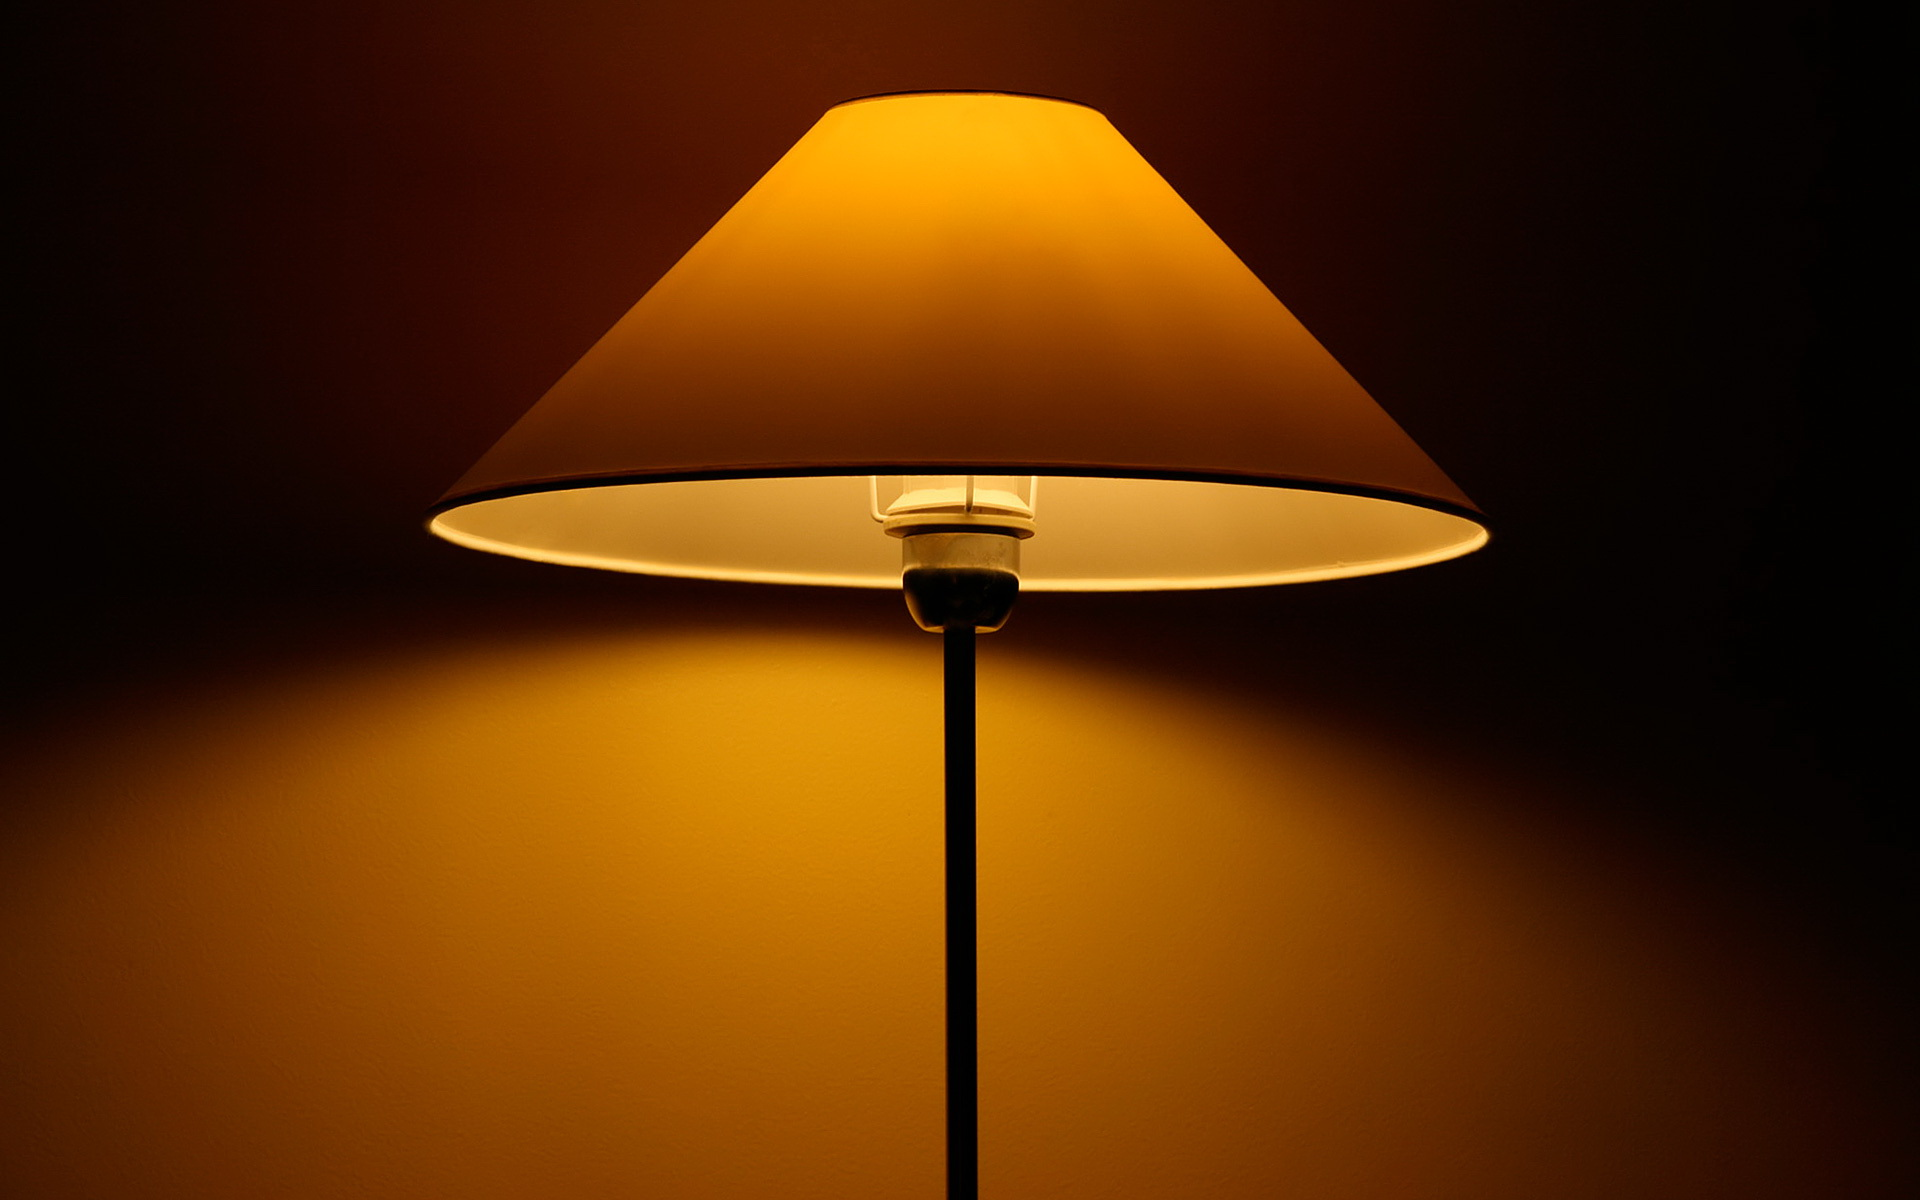 24 Wonderful HD Lamp Wallpapers